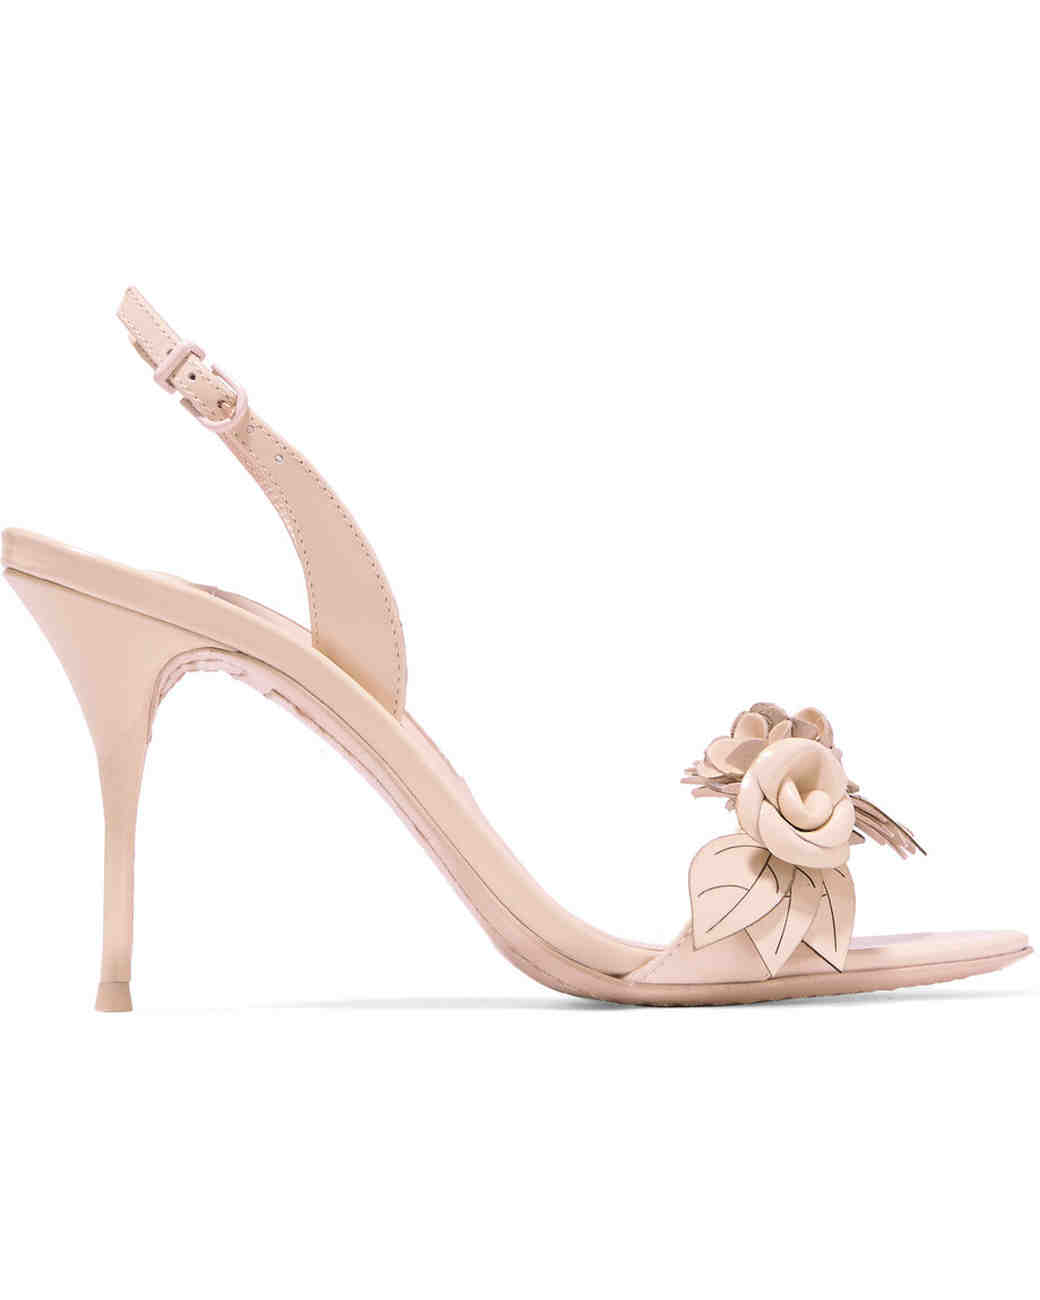 14 Nude Wedding Shoes We Love | Martha Stewart Weddings